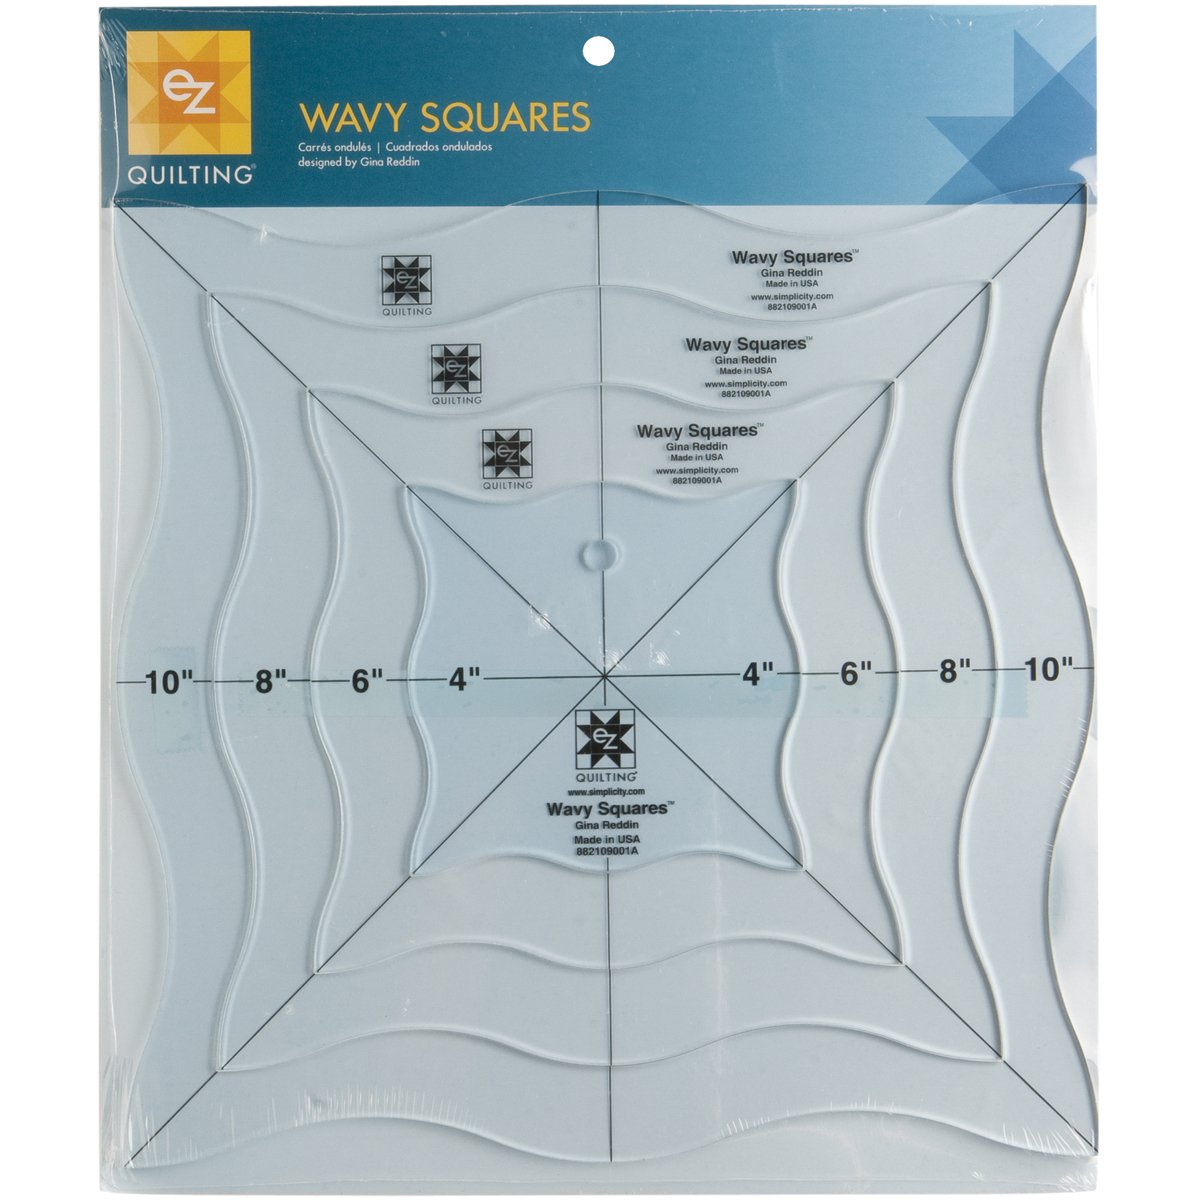 EZ Quilting Wavy Squares Acrylic Template Simplicity 109001A